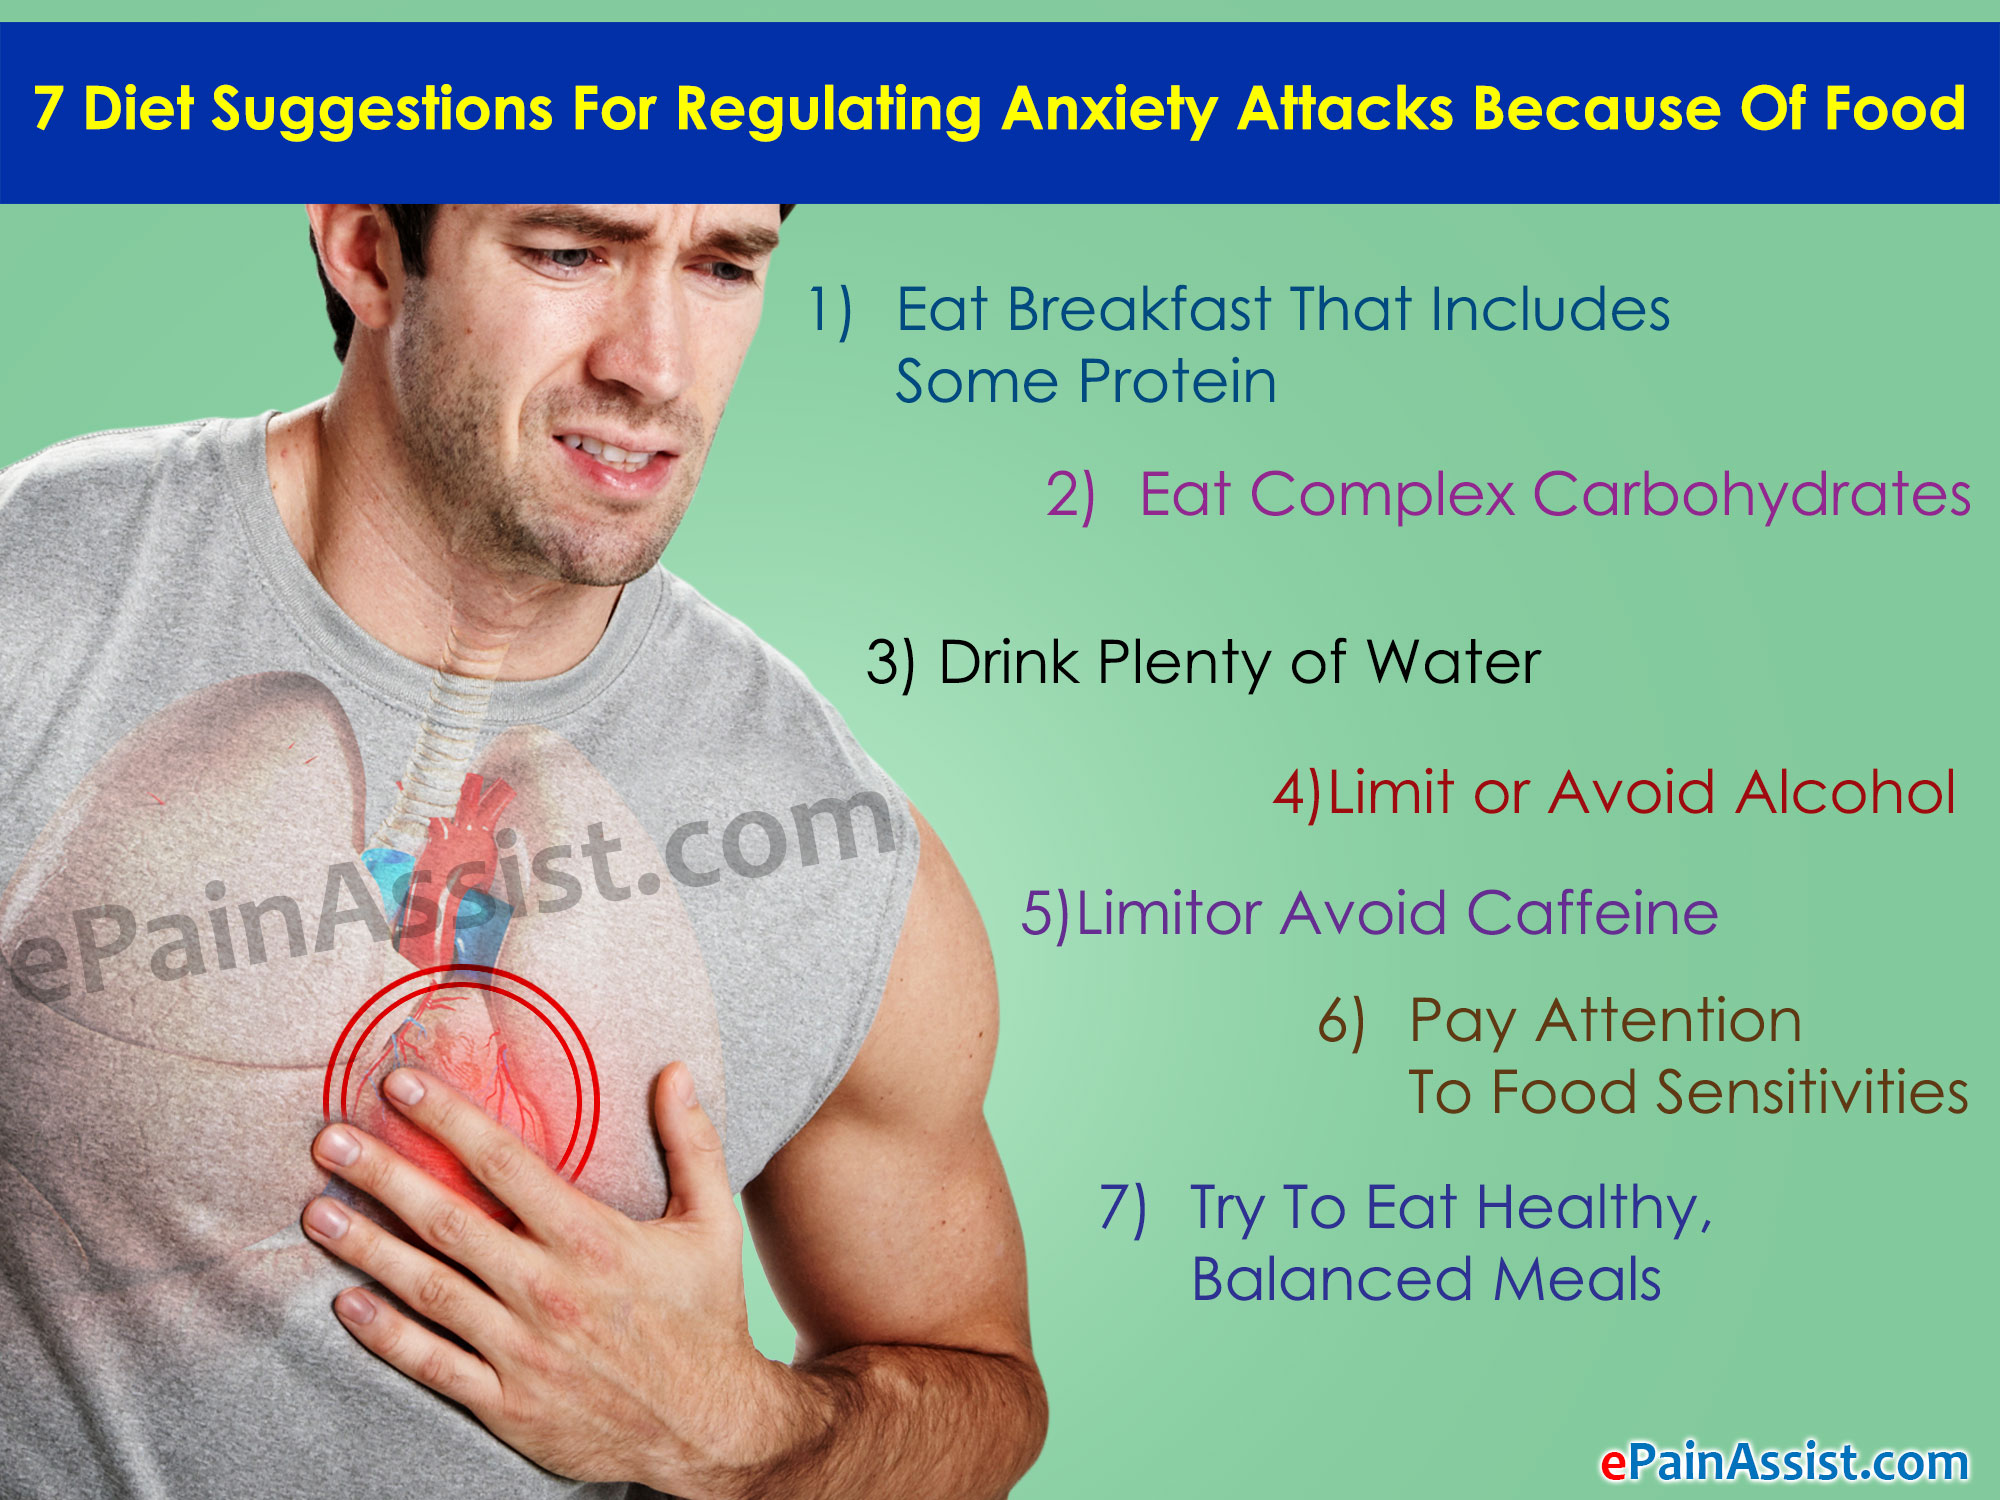 Reasons for Generalized Anxiety Attacks After Eating